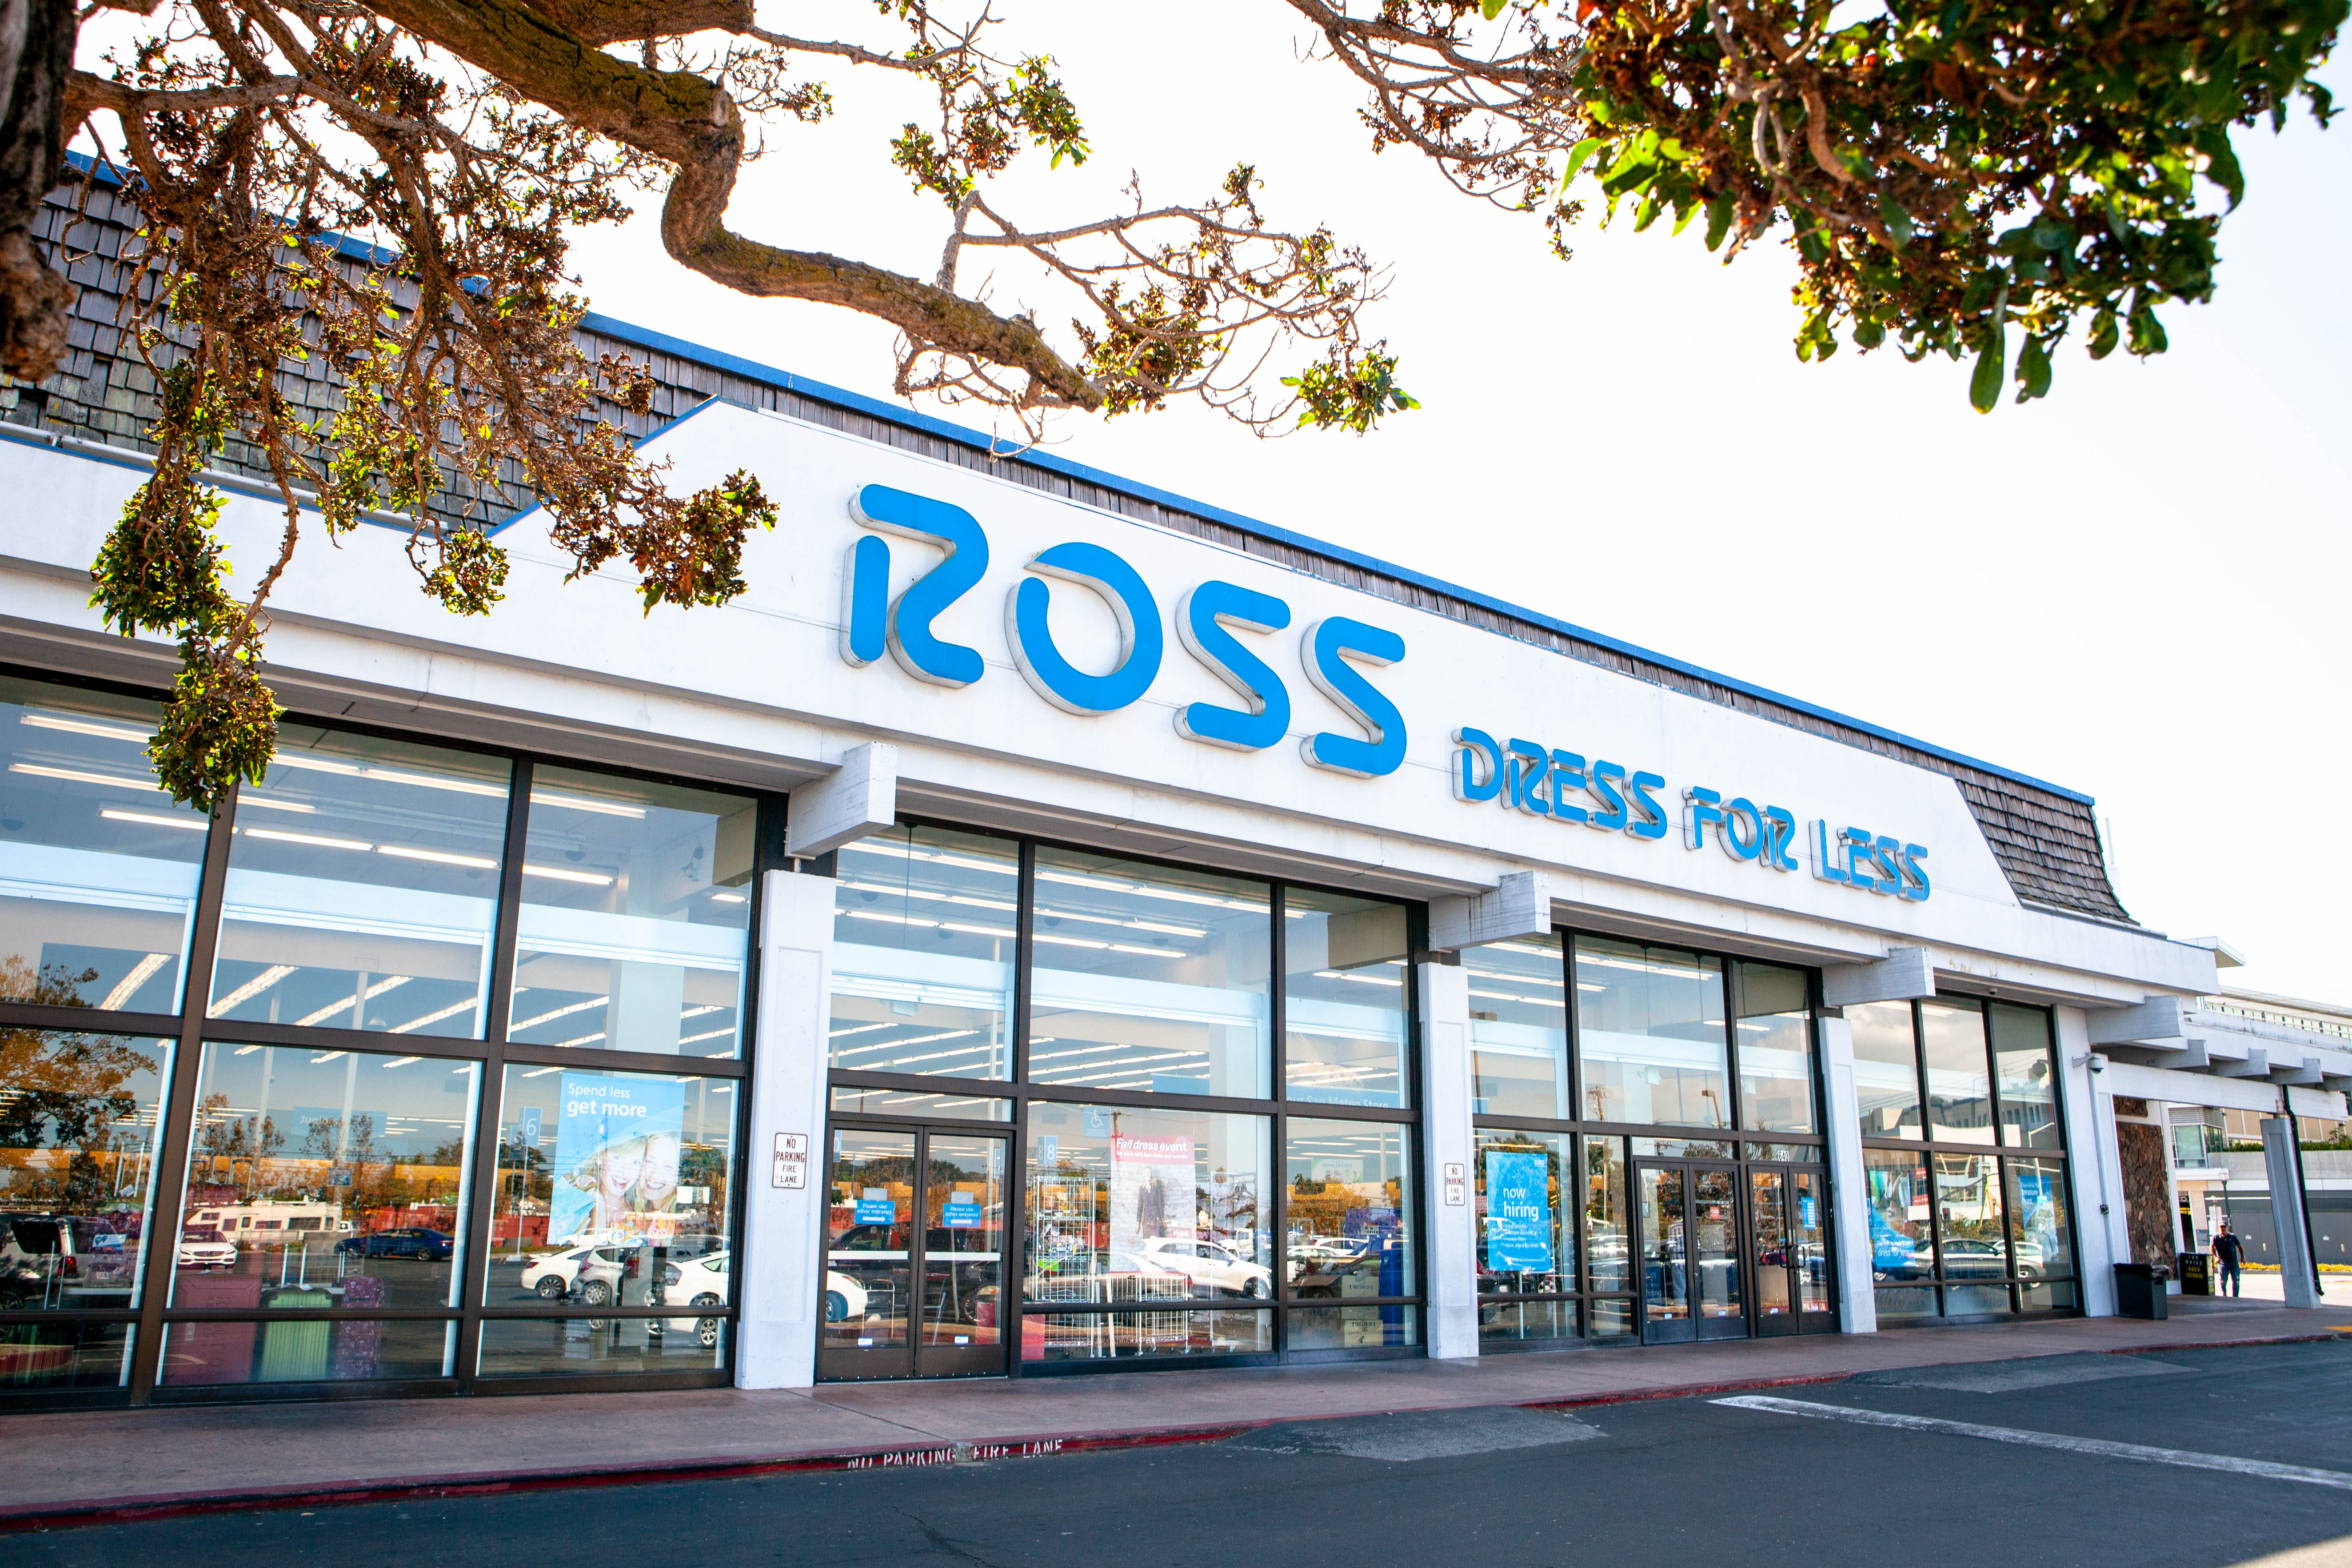 Ross store entrance and logo. Ross Stores is an American chain of off-price department stores.